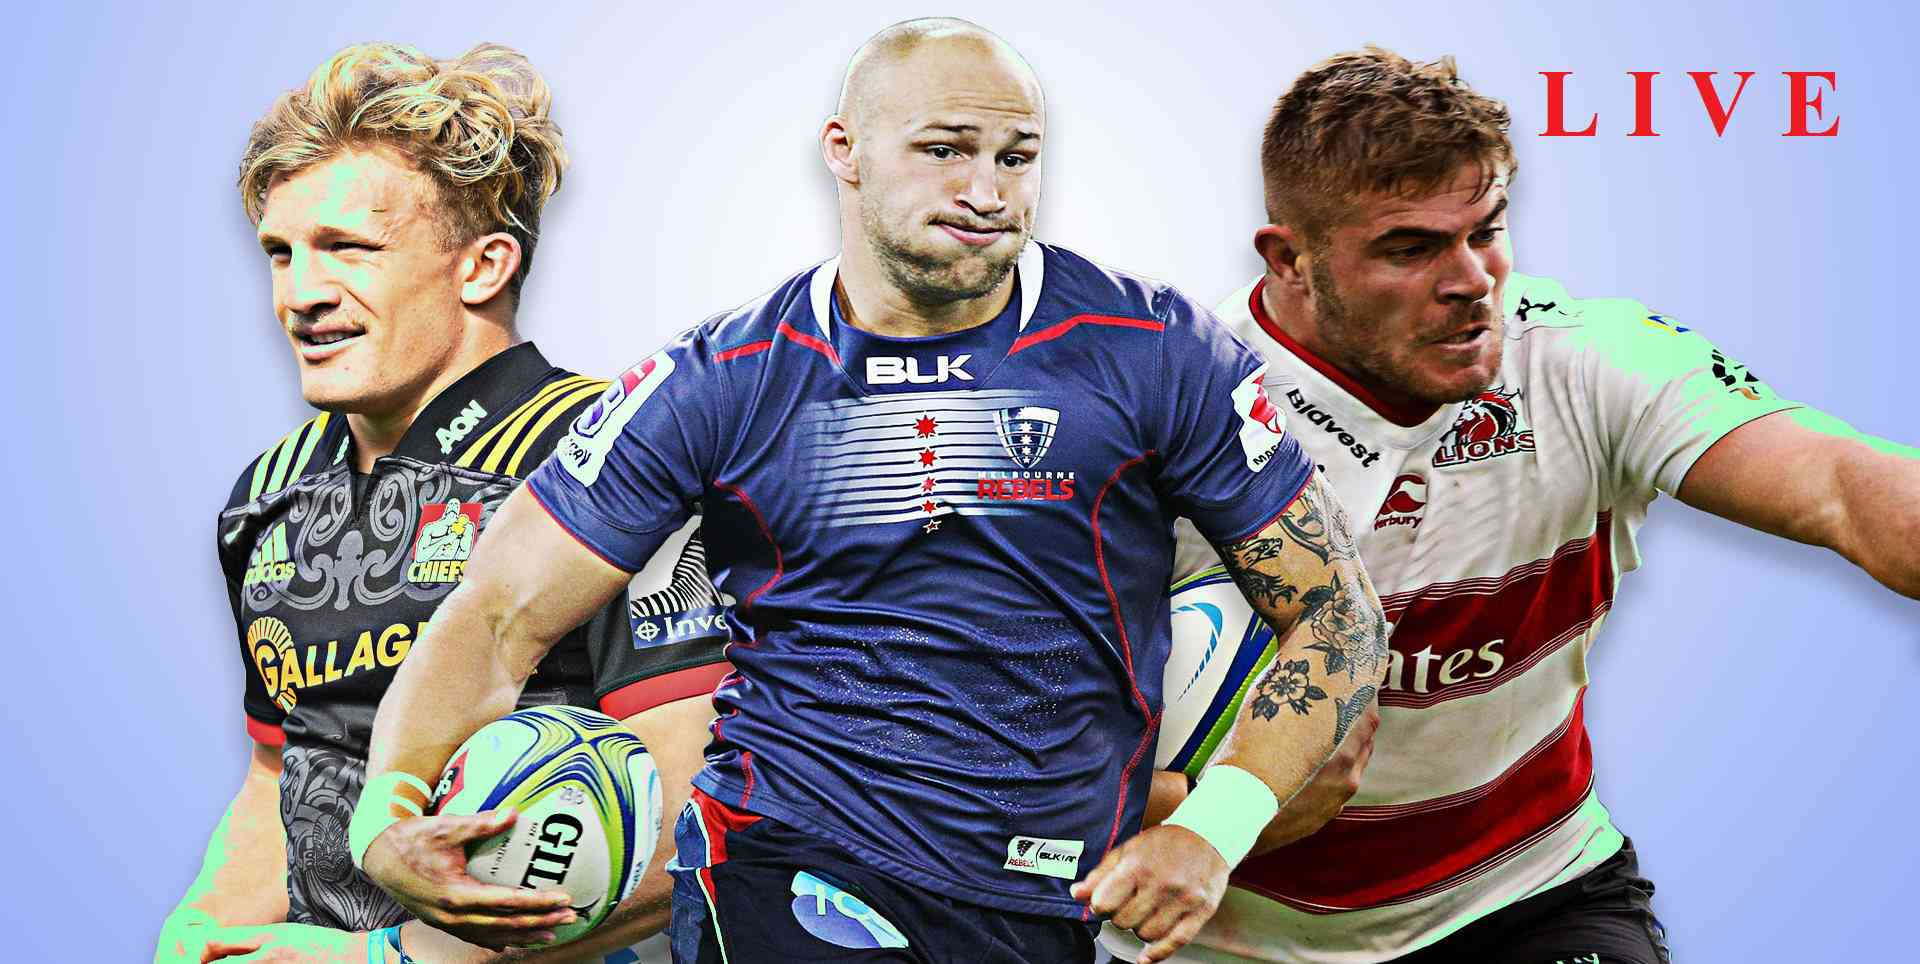 toulon-vs-saracens-live-streaming